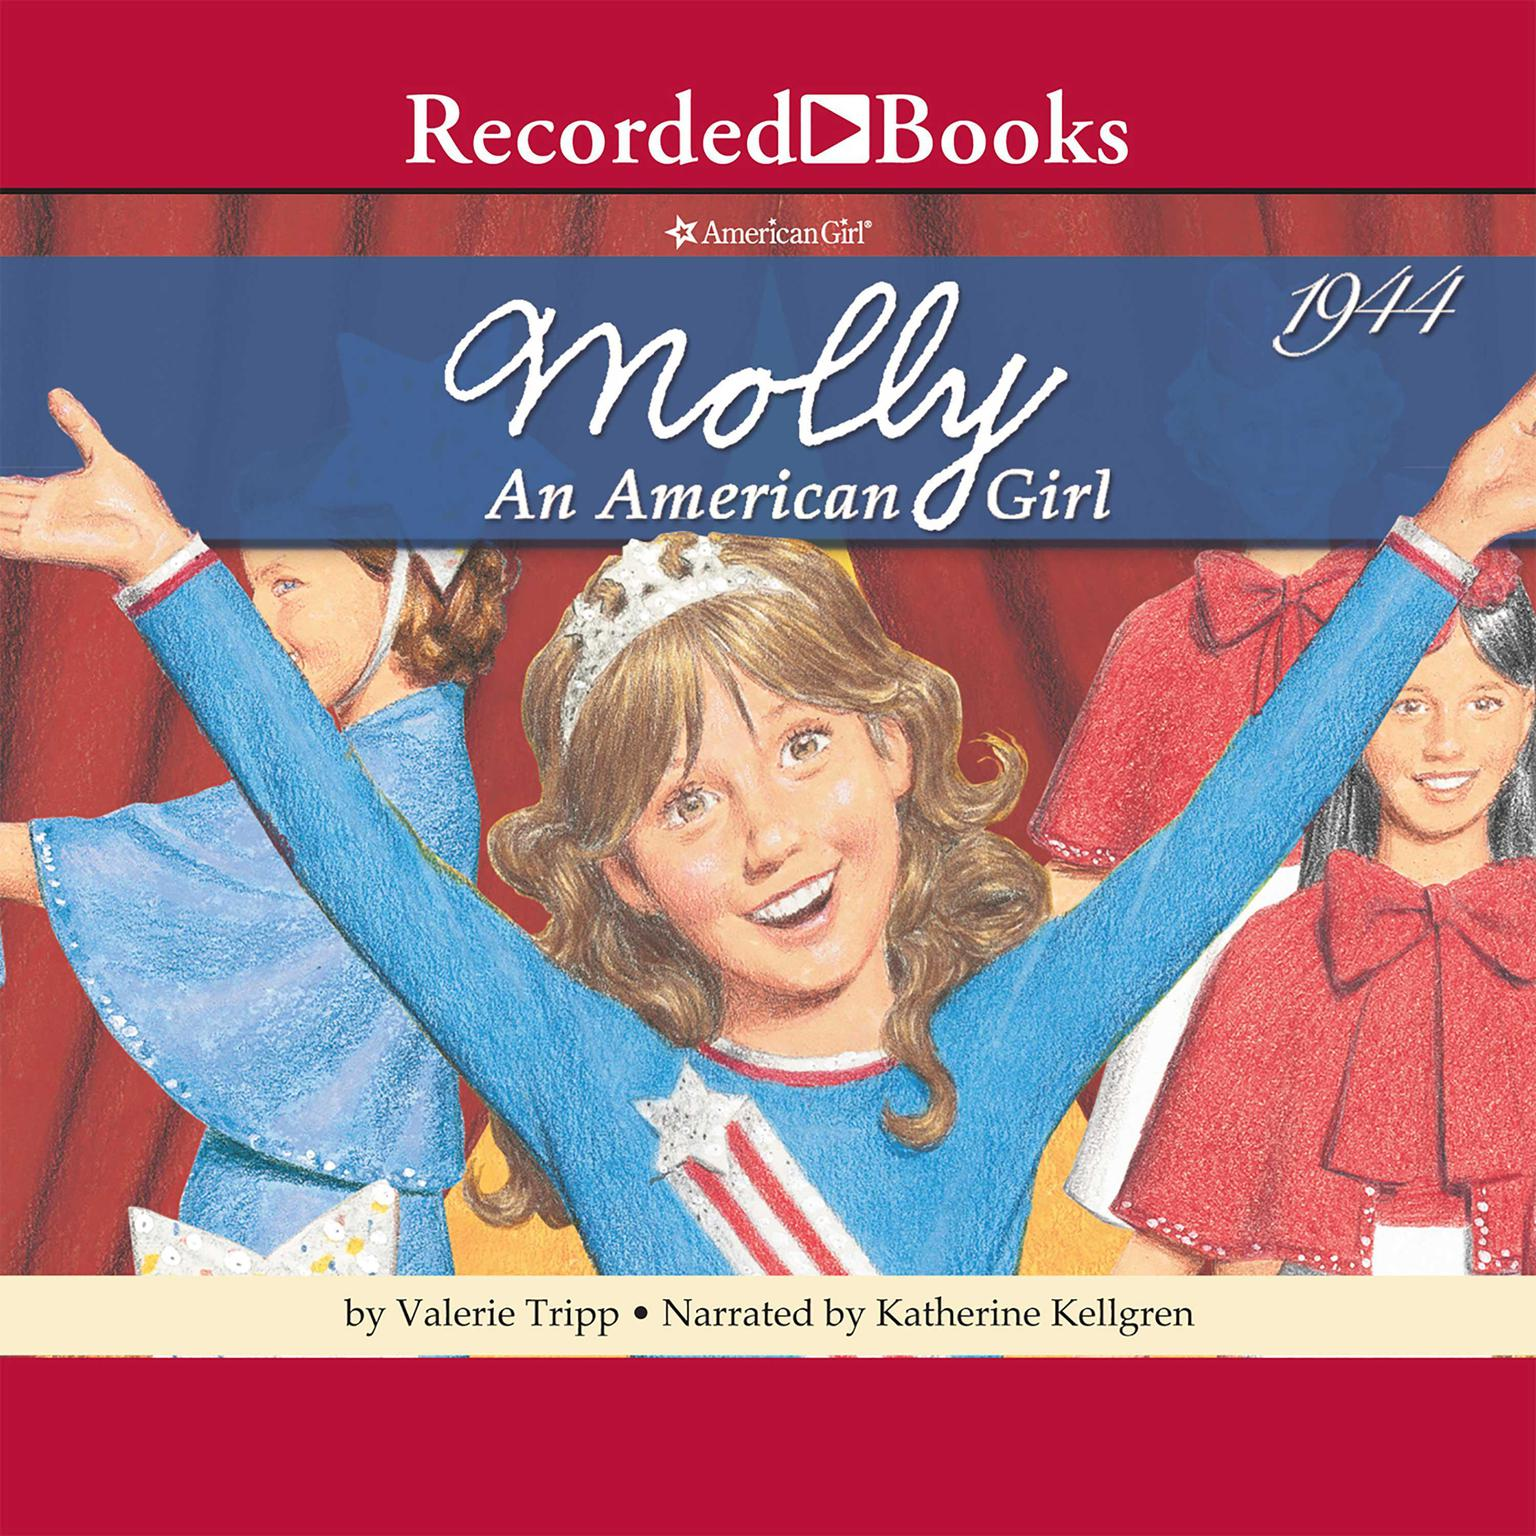 Printable Meet Molly: An American Girl: 1944 Audiobook Cover Art